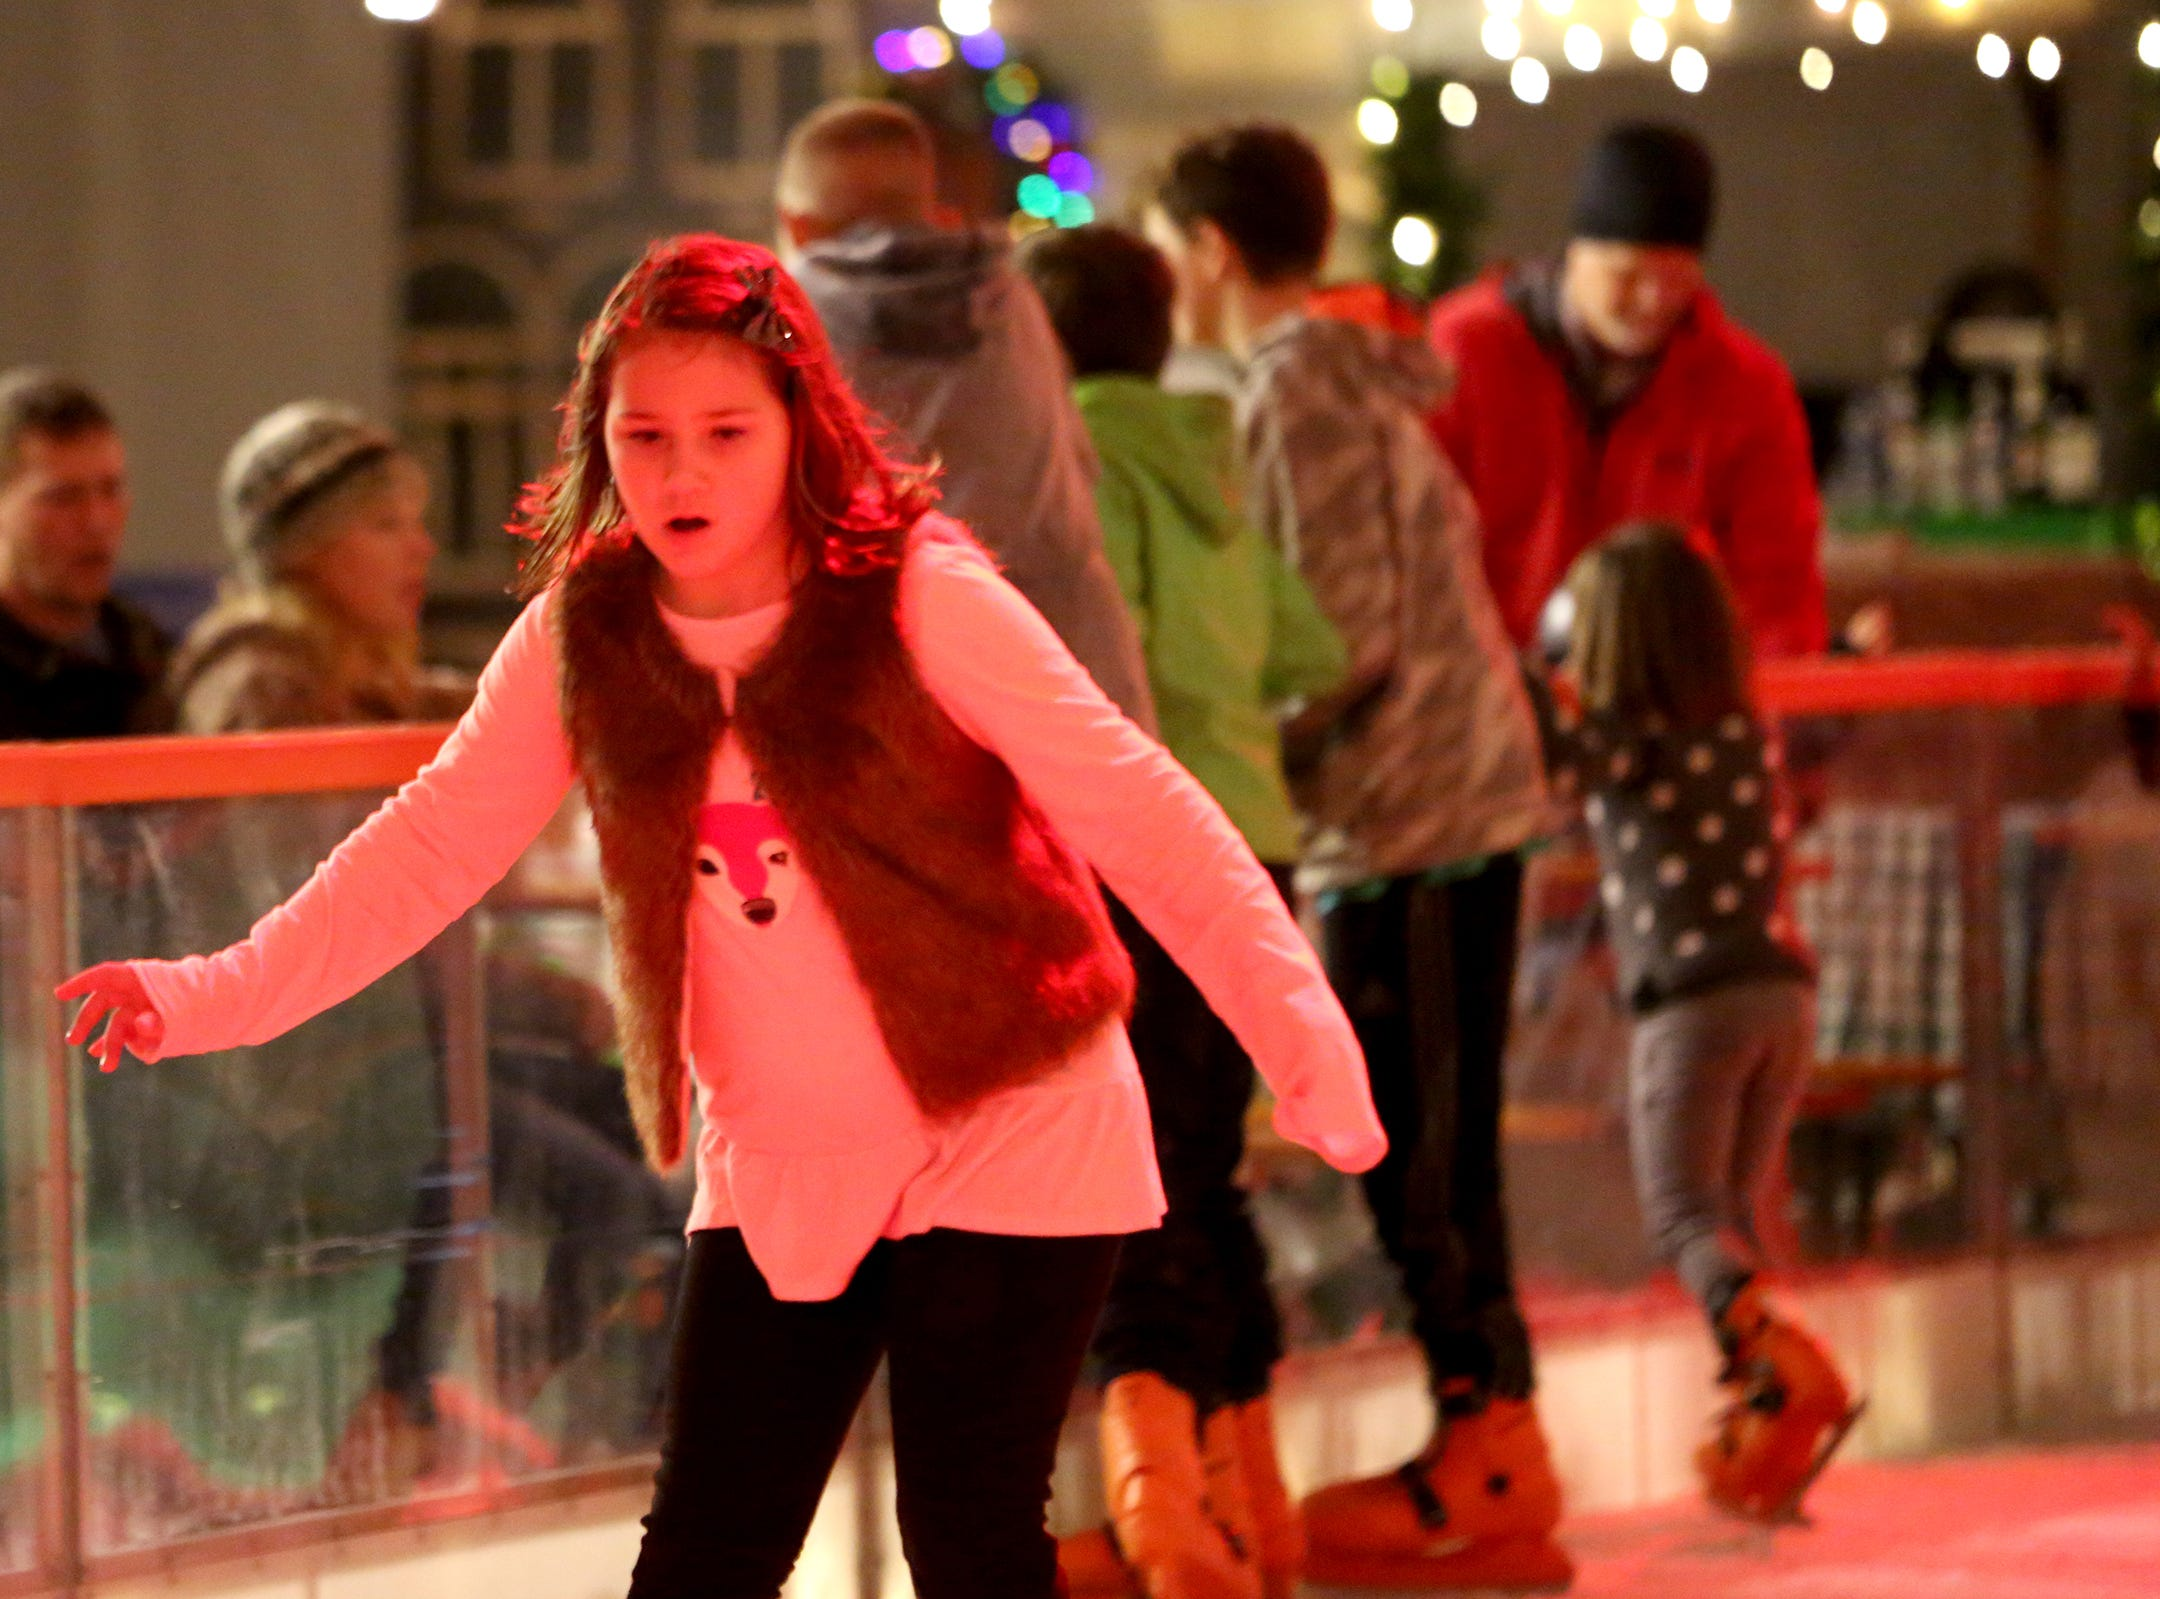 Christmas in the Garden is set up at the Oregon Garden Resort on Wednesday, Nov. 28, 2018, in Silverton. The winter wonderland features an ice skating rink.